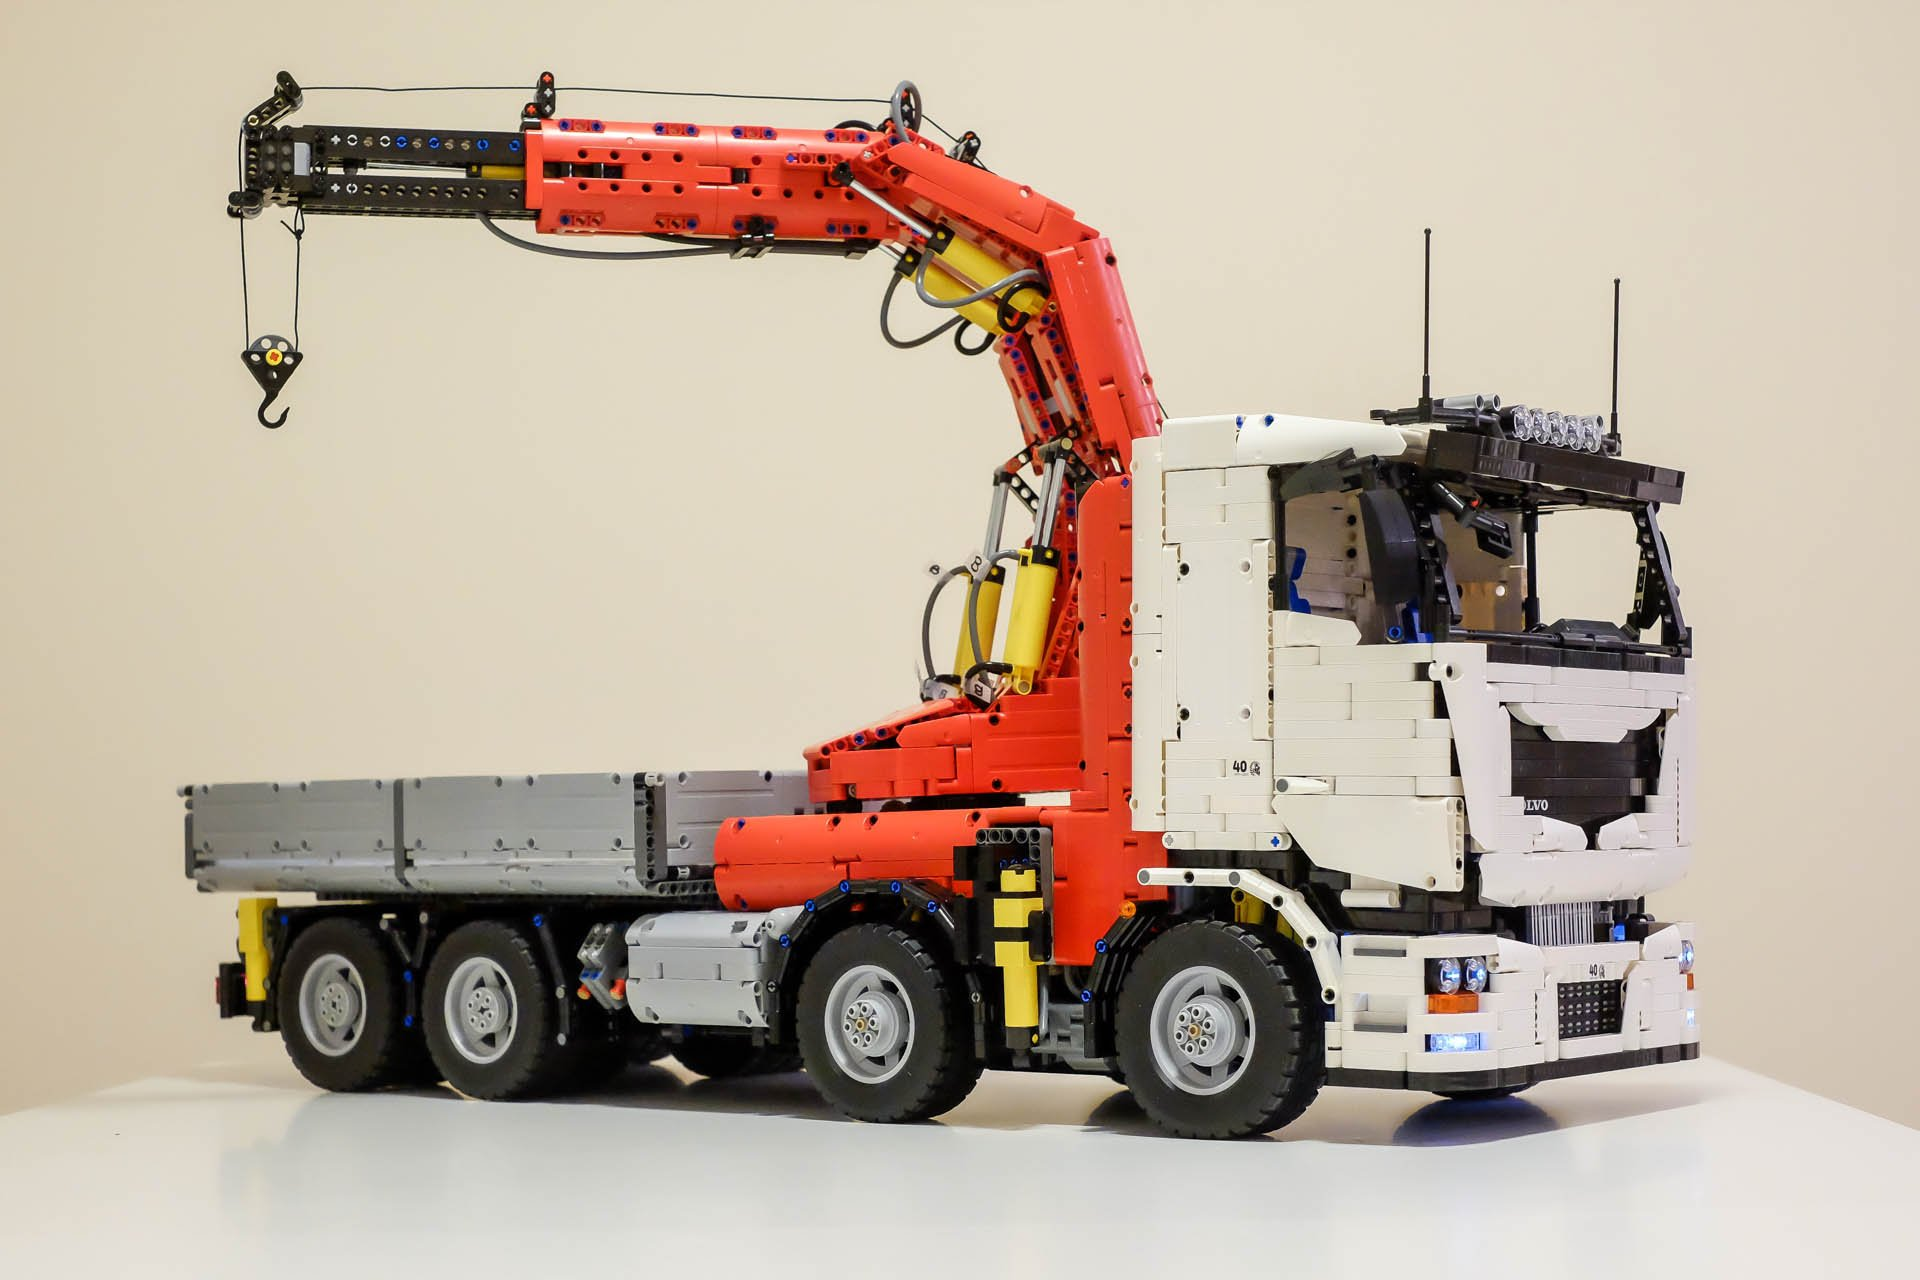 lego technic crane truck instructions